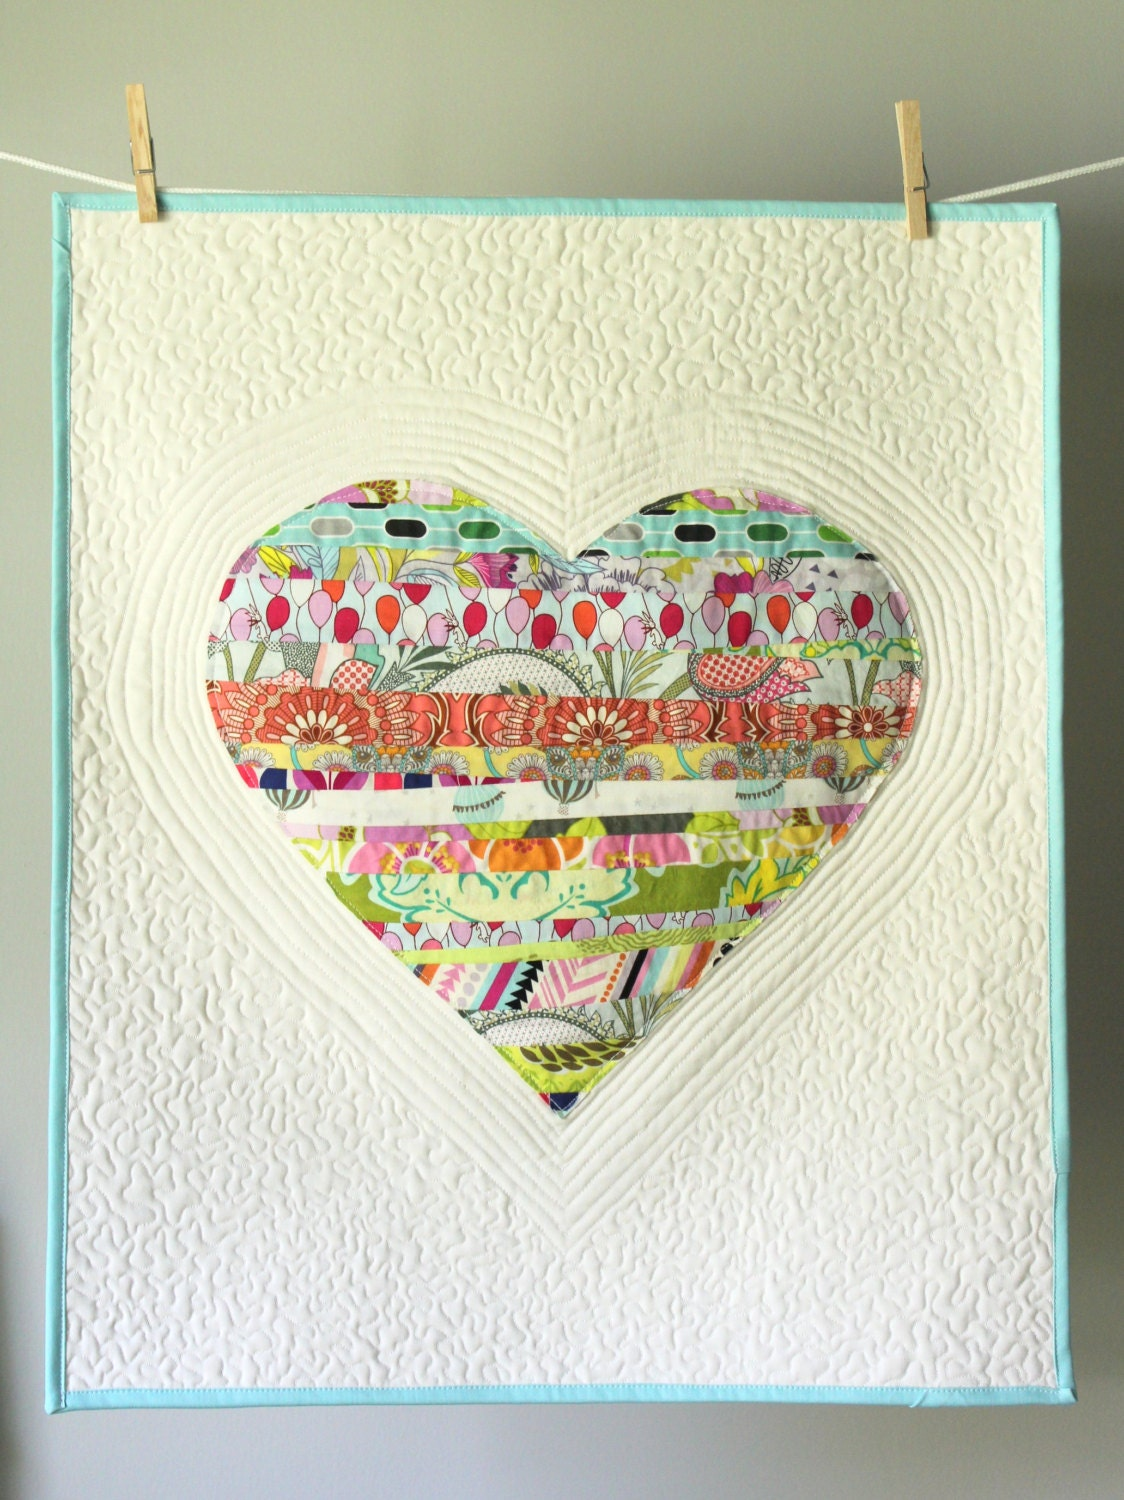 Decorative Wall Hanging Hearts : Nursery wall decor quilted hanging heart by gobewonderful